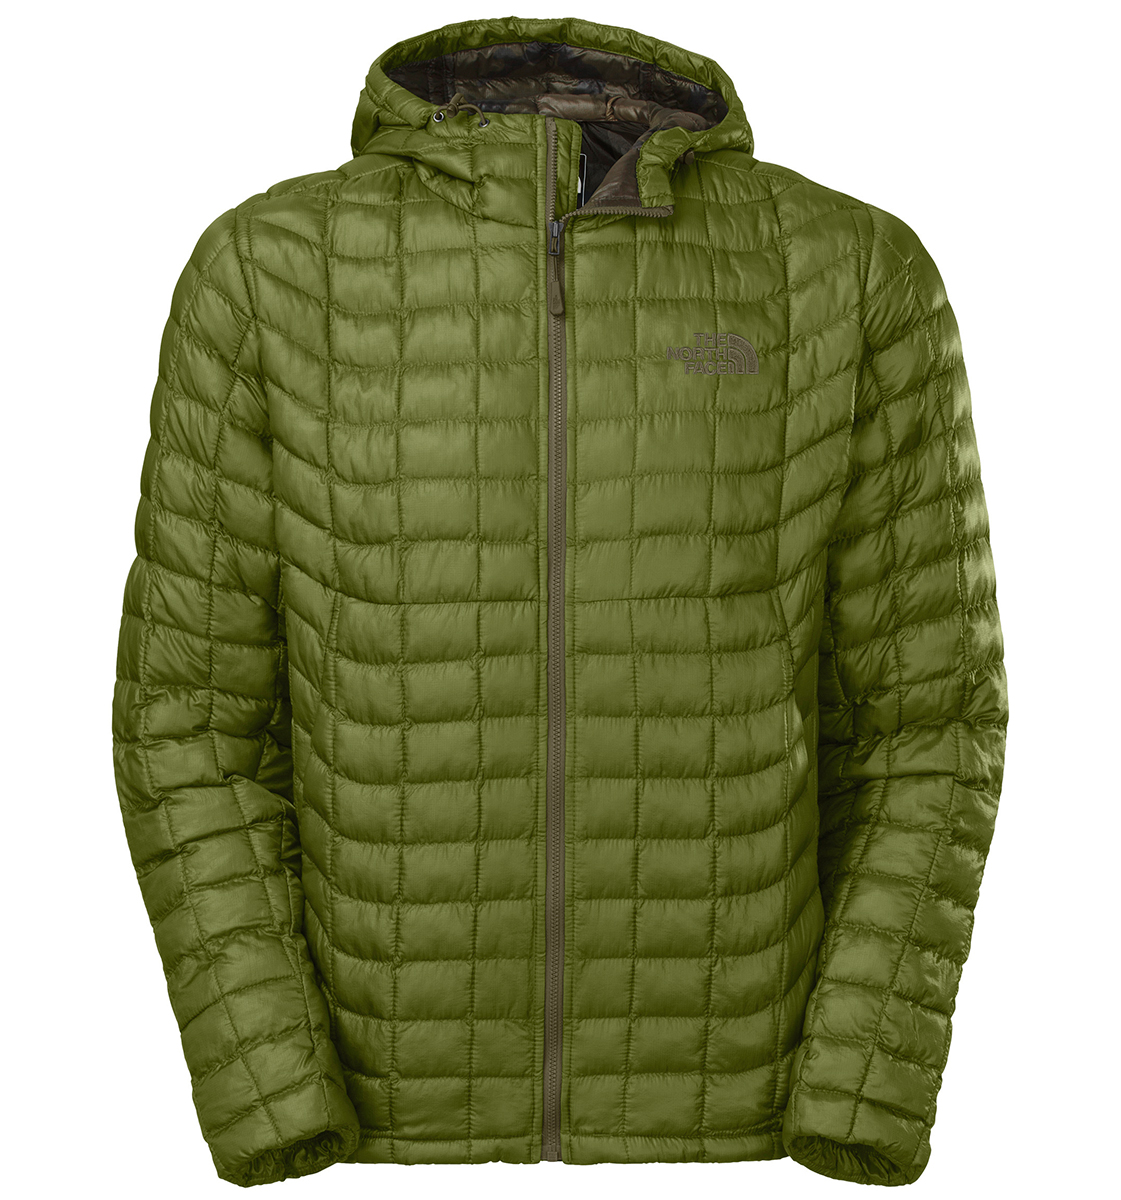 Weather the outdoors with these top-notch jackets